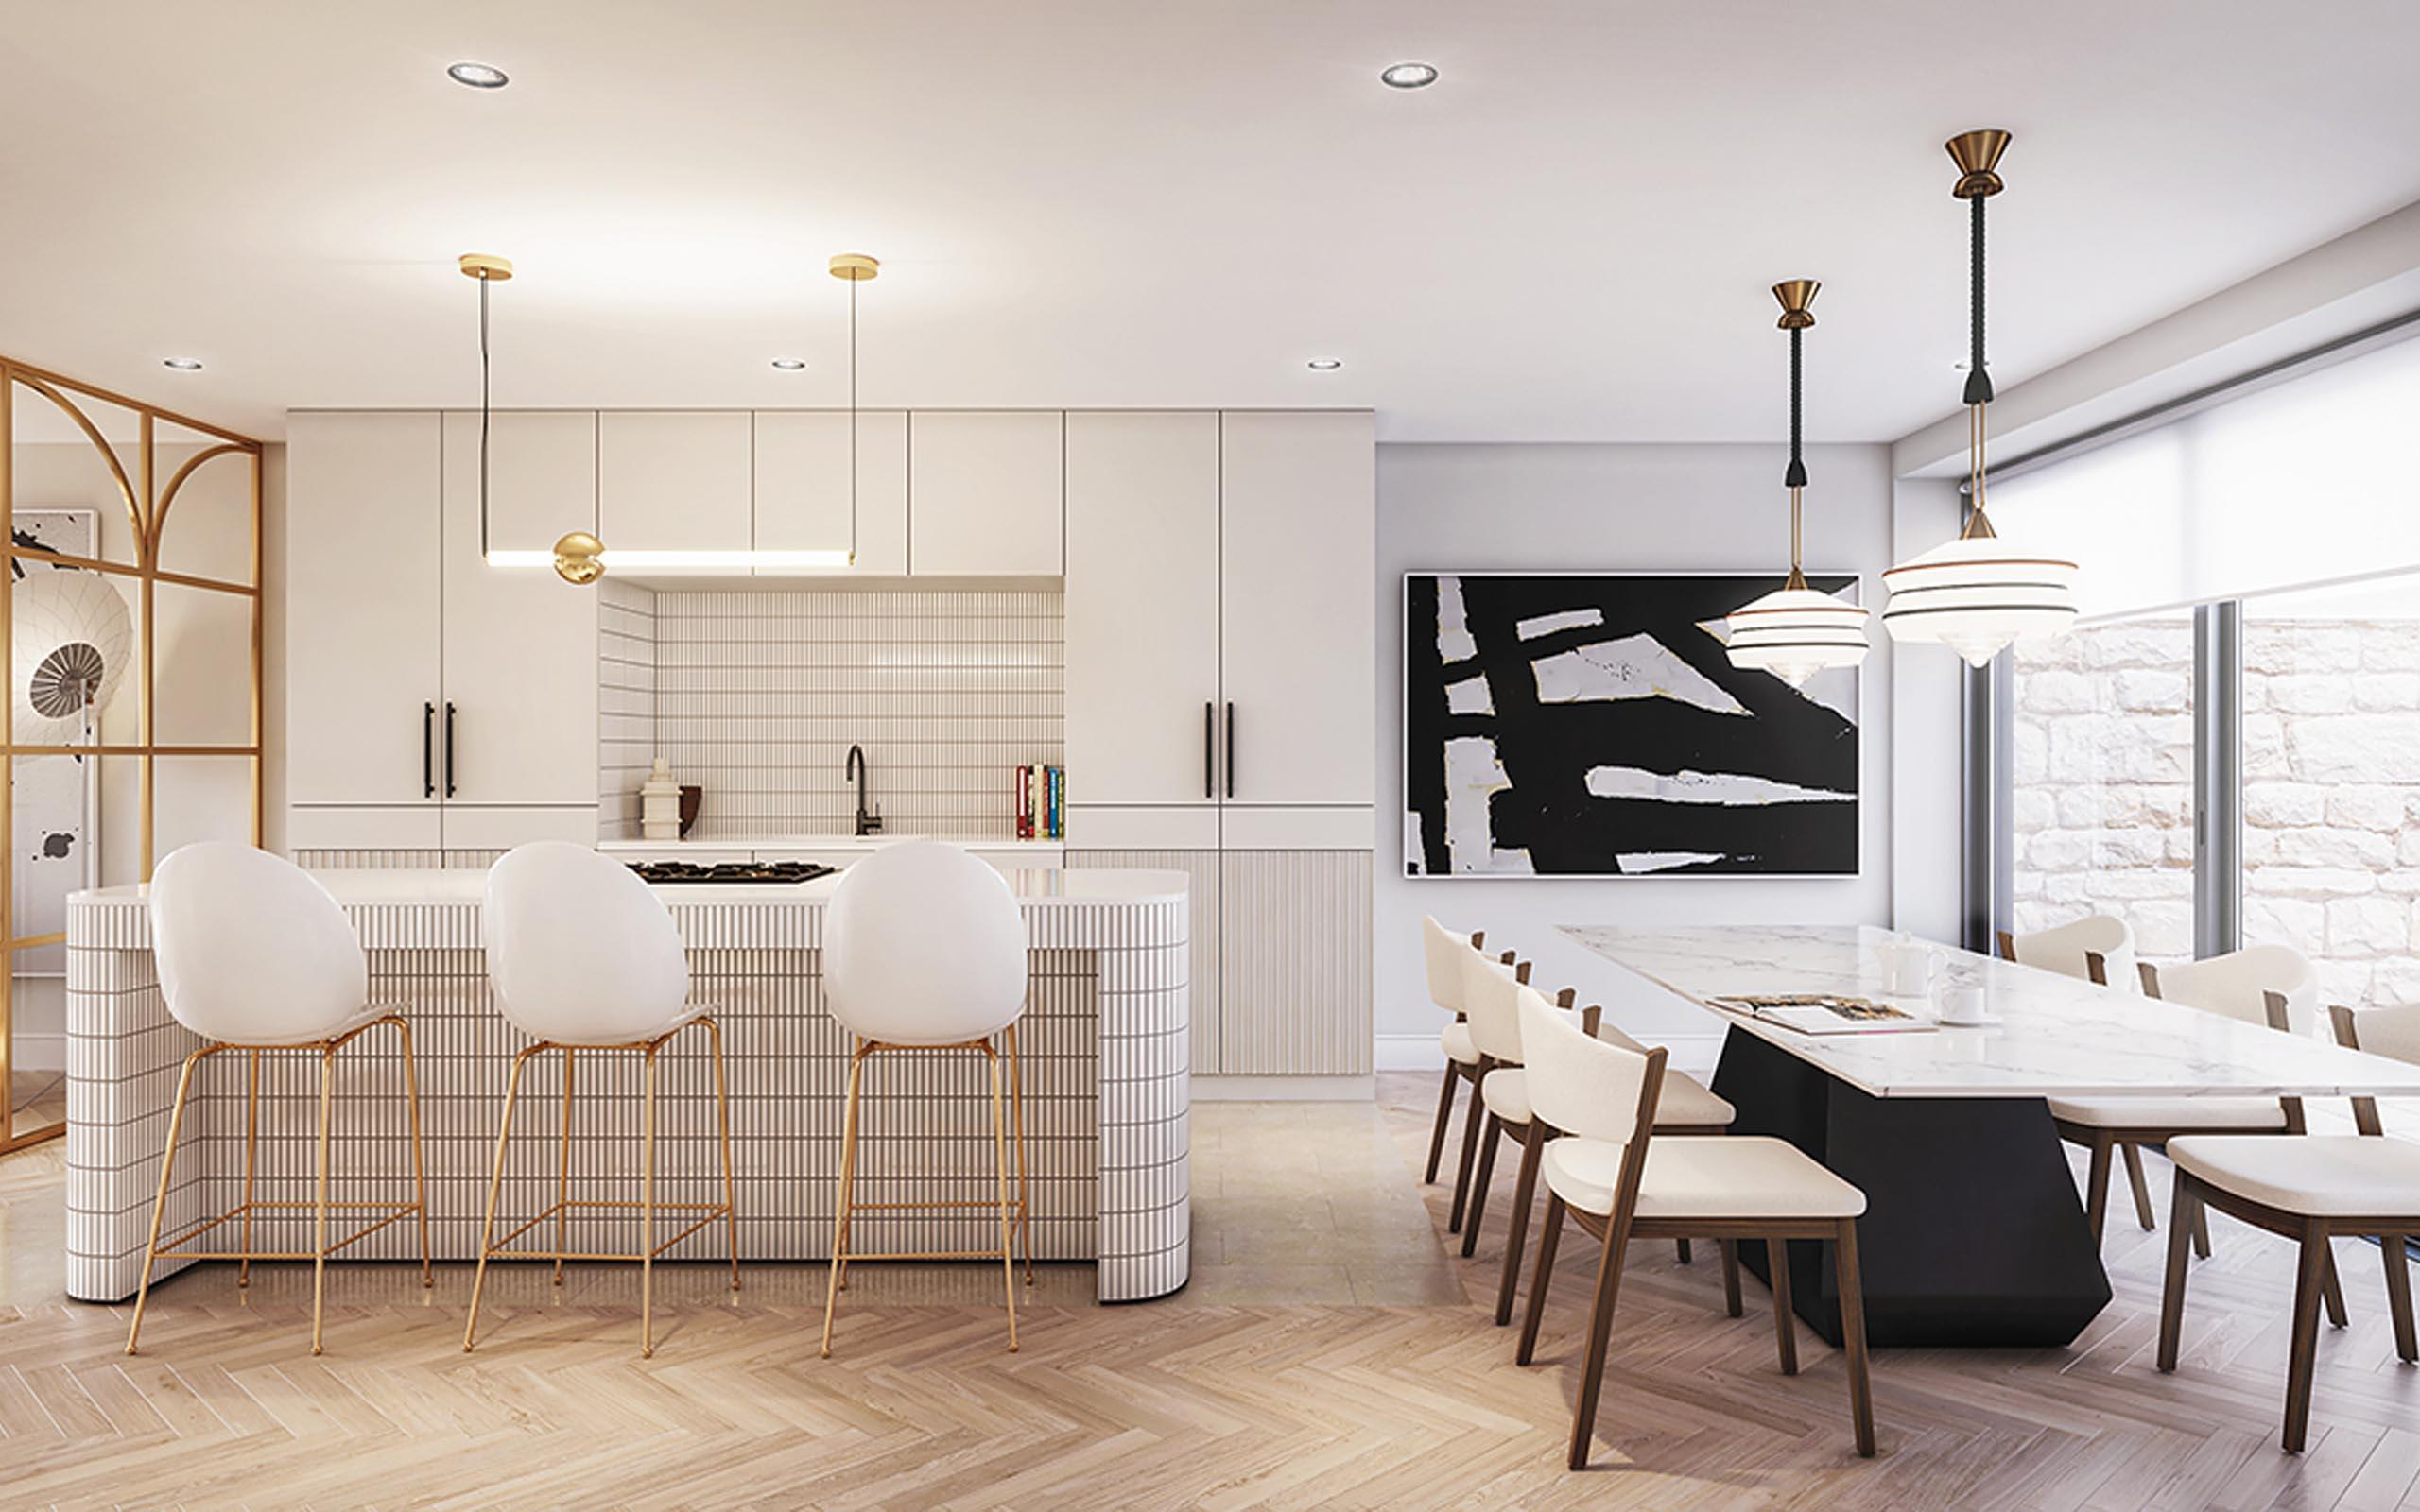 Interior CGI of Kitchen/dining area, house type 1, Dalkey residential development.